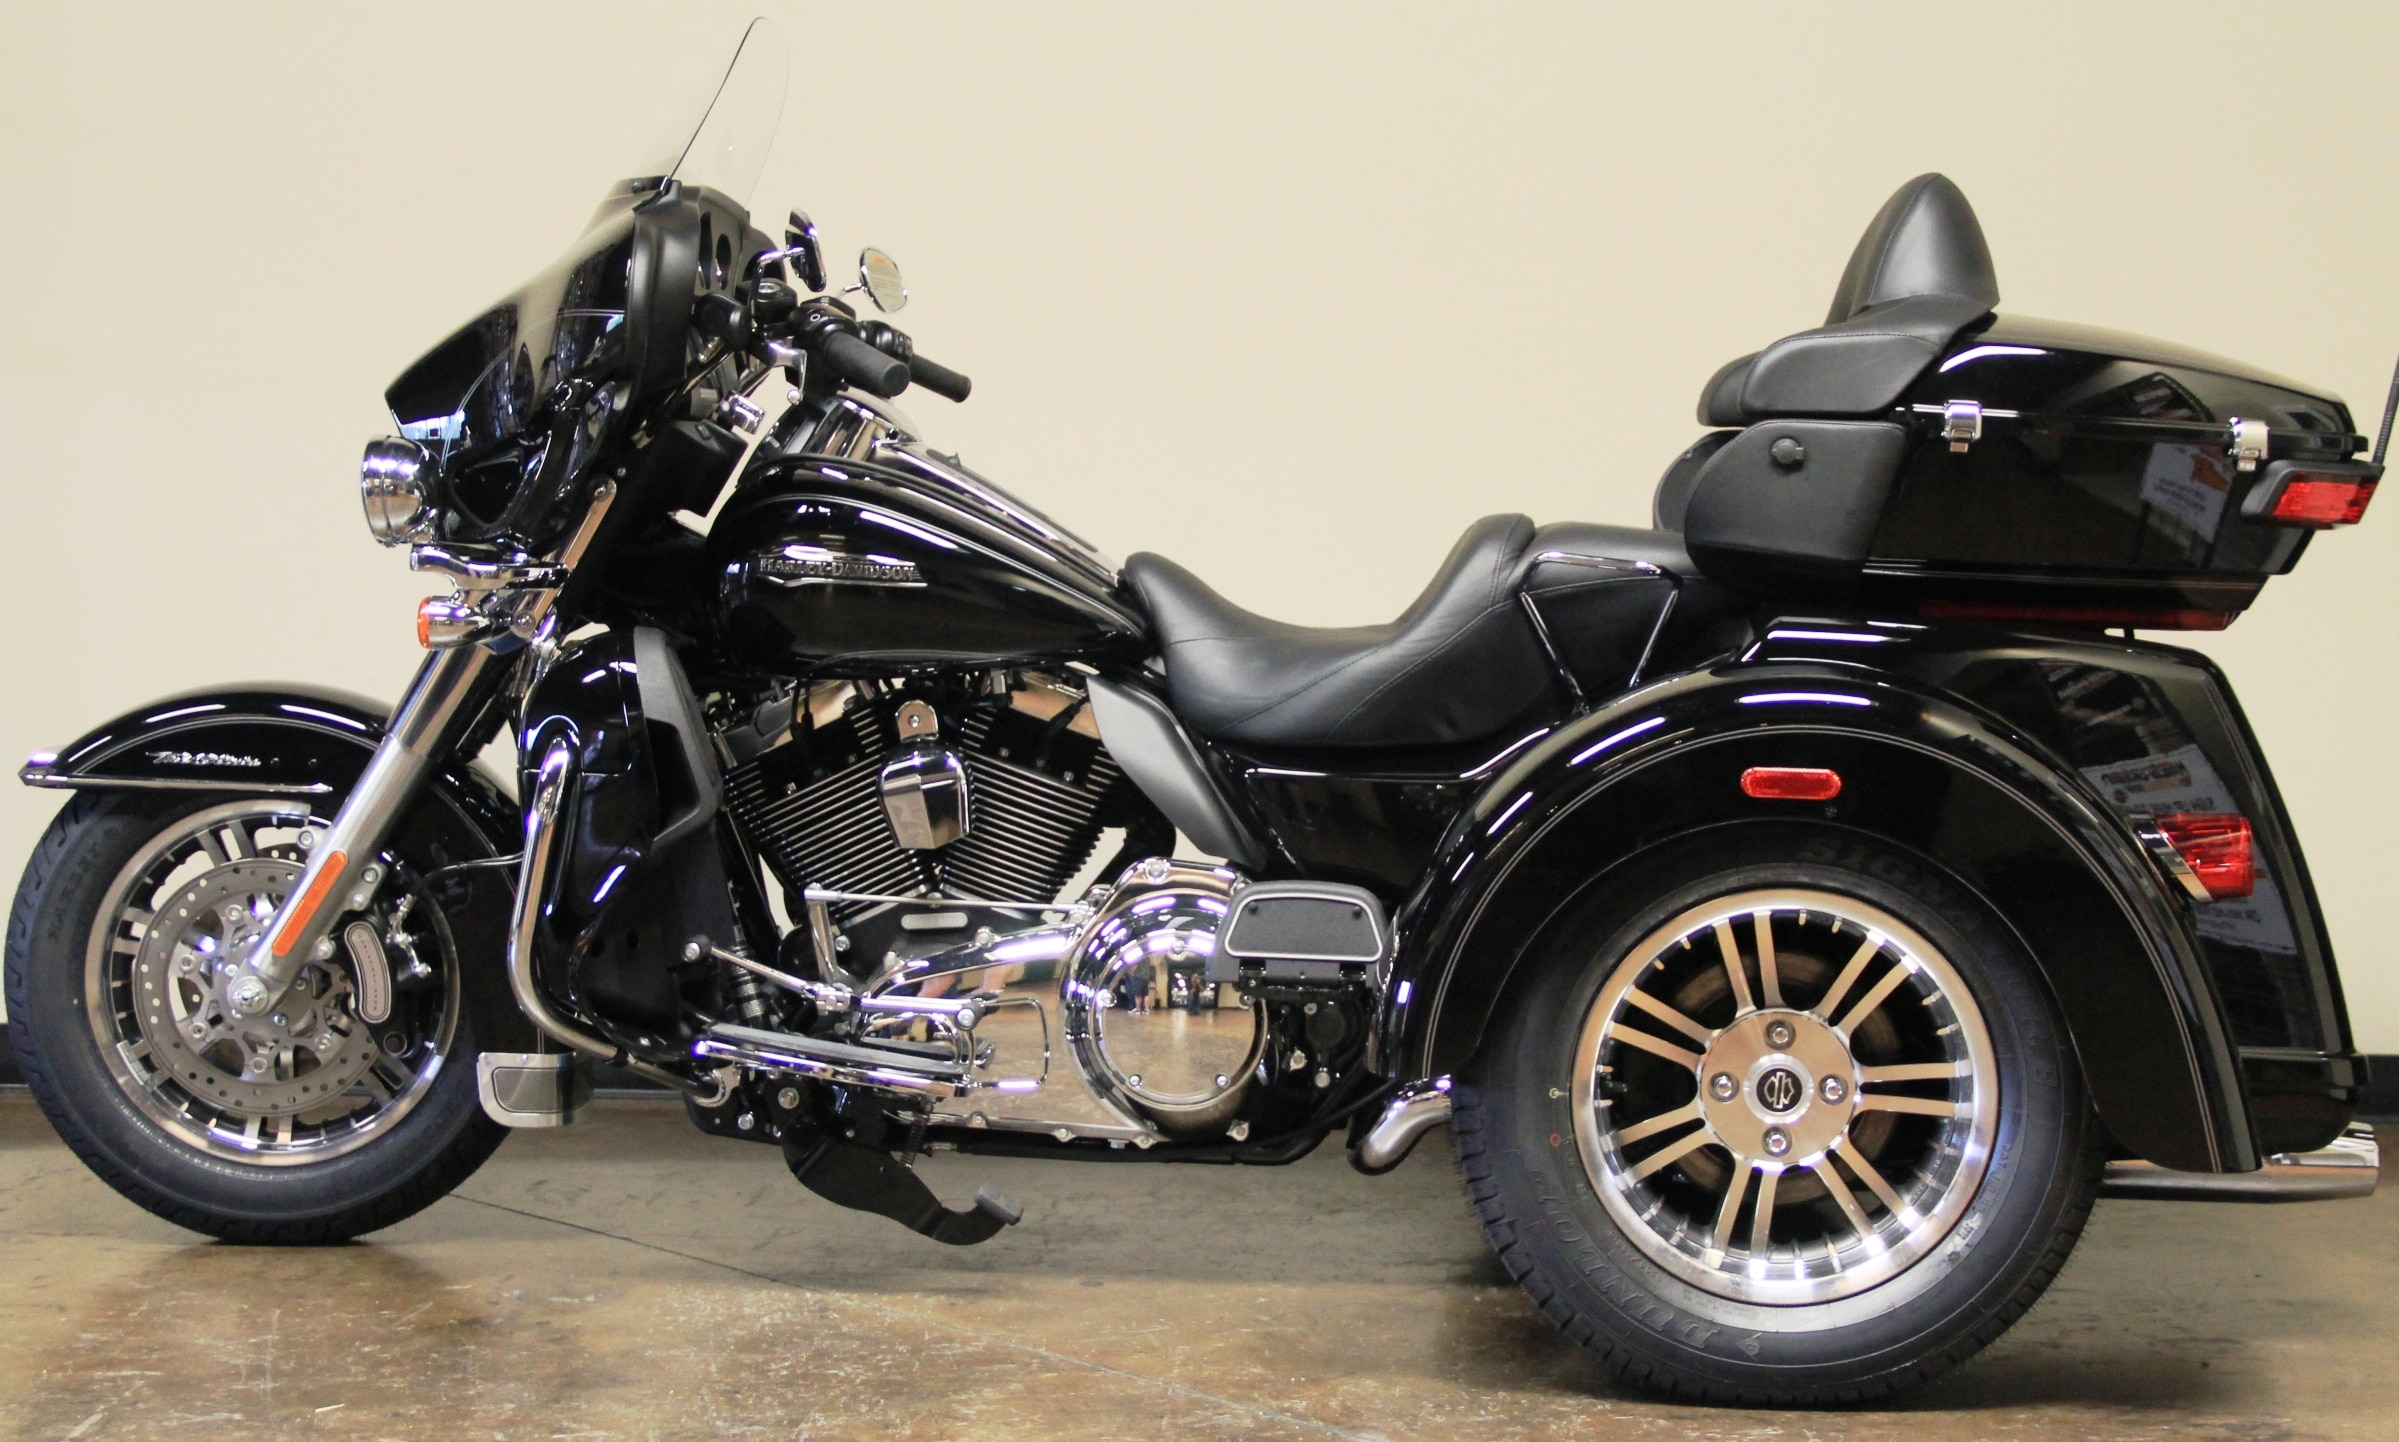 2014 Harley Davidson Flhtcutg Tri Glide Ultra Classic Review: Object Moved